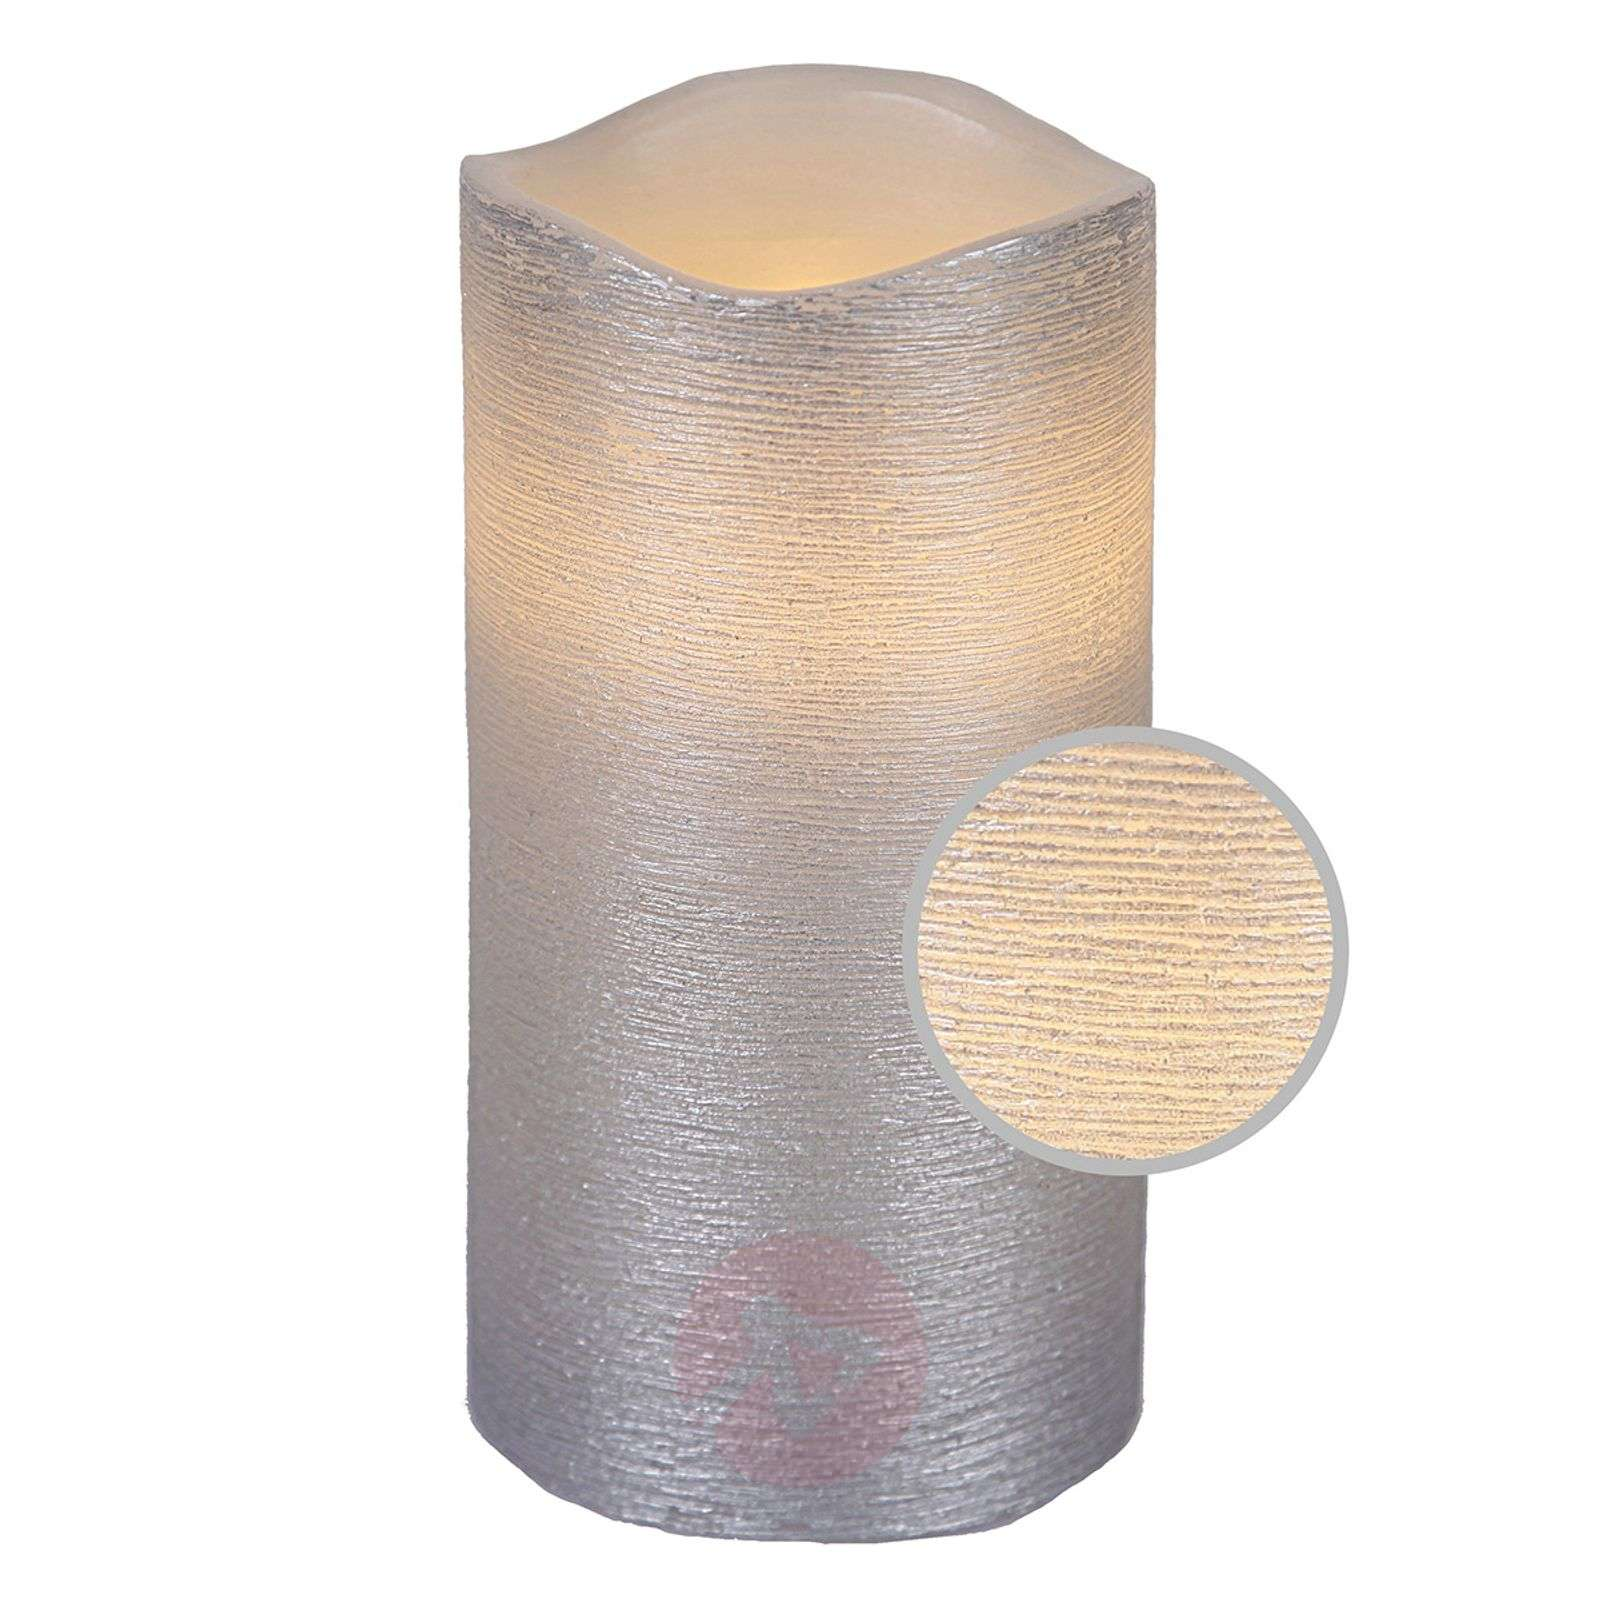 15 cm real waxLED candle Linda structured white-1522549-01